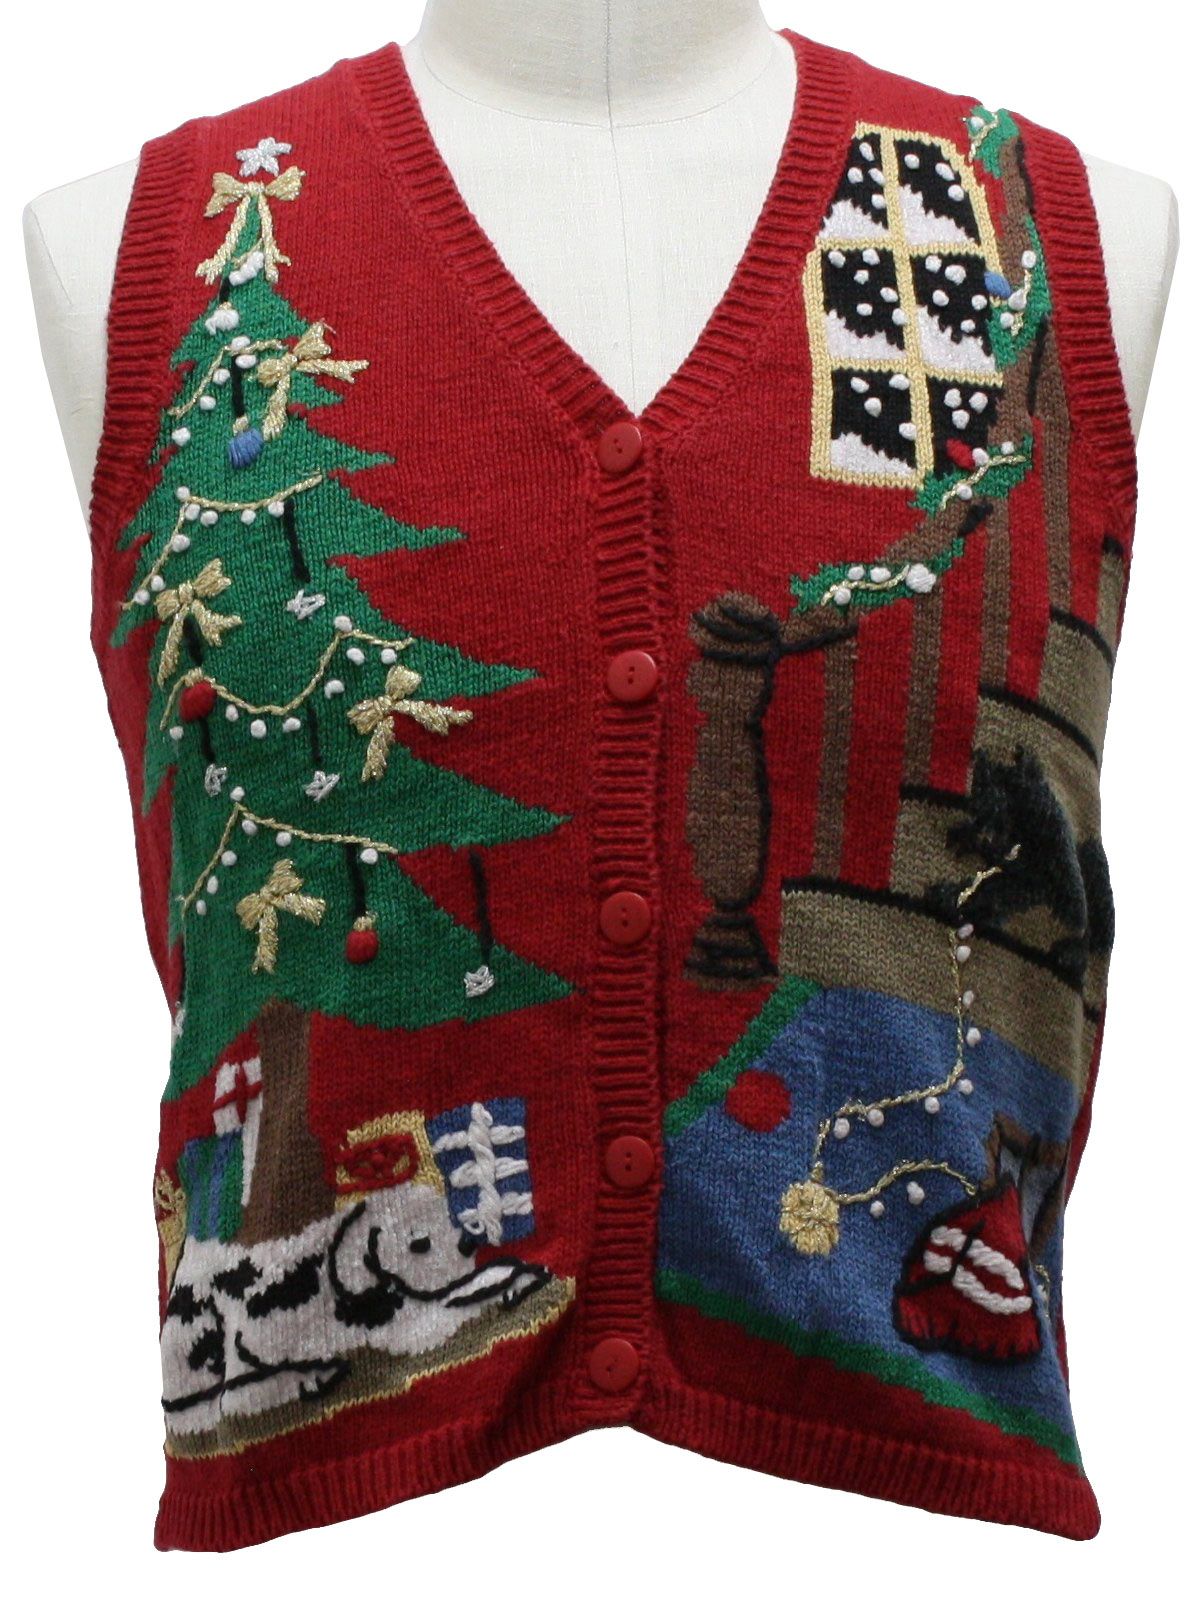 Womens Ugly Christmas Sweater Vest: -Capacity- Womens Red ...